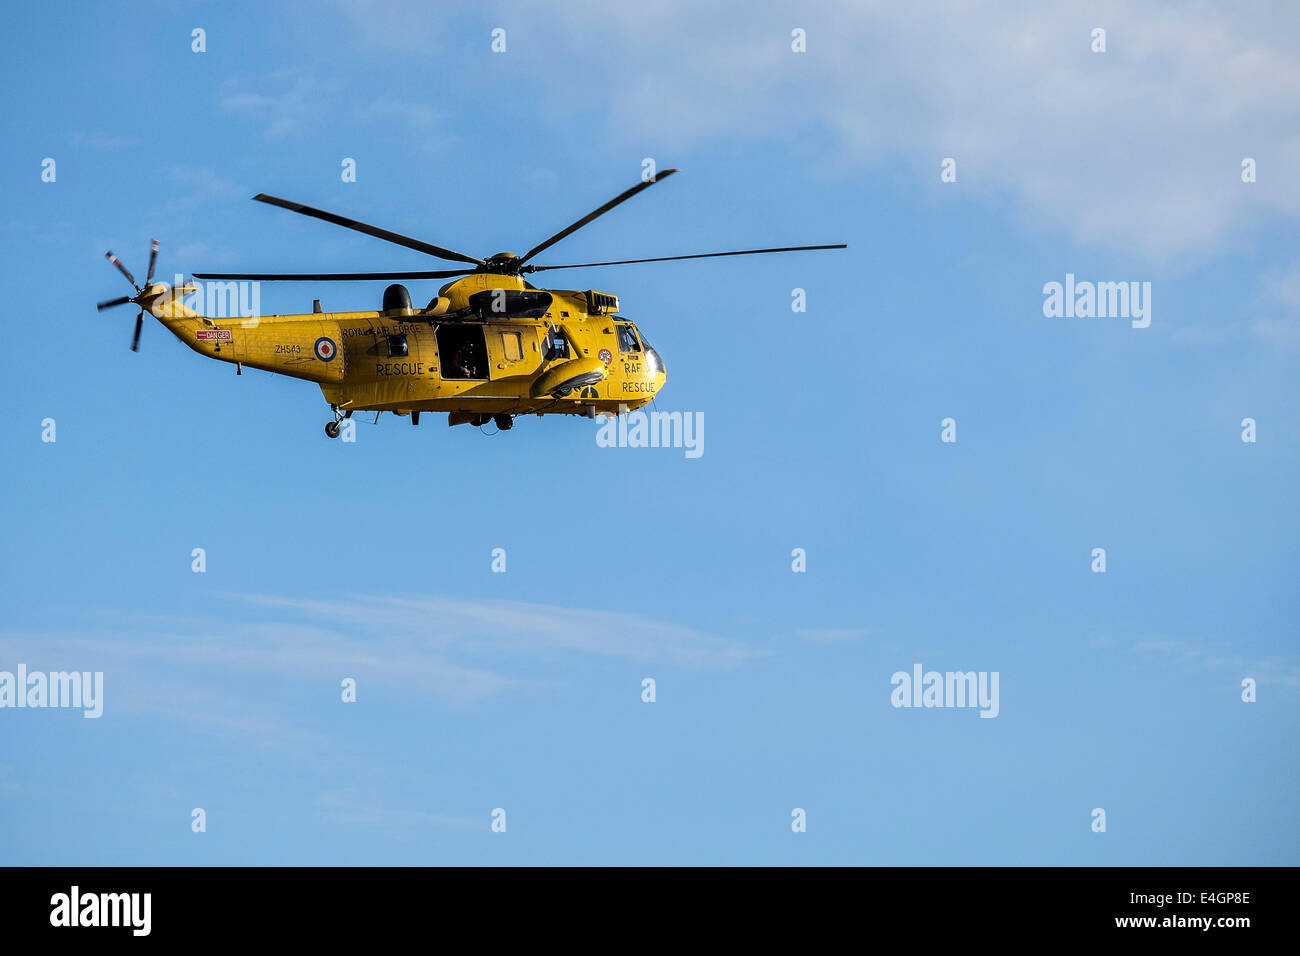 An RAF rescue helicopter flying overhead. - Stock Image